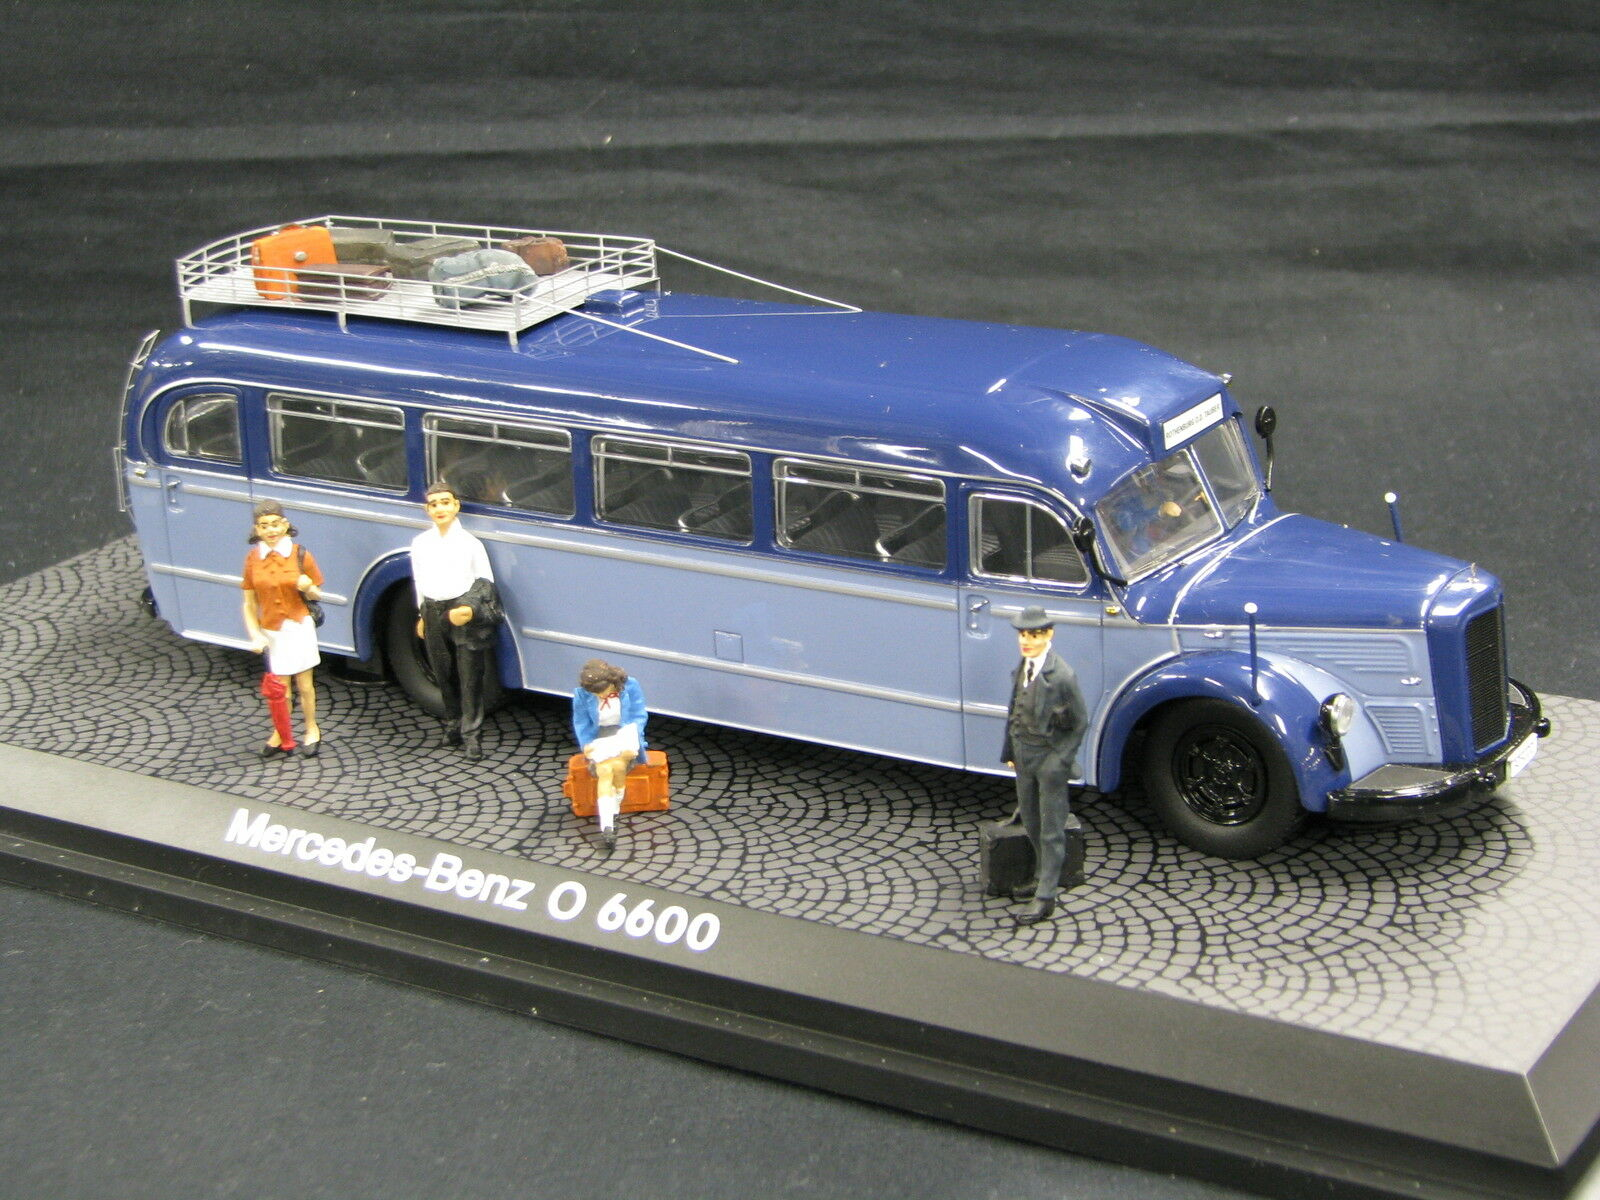 Schuco  Diorama Mercedes-Benz Bus O 6600 1 43 bleu   bleu with figurines (JS)  design simple et généreux